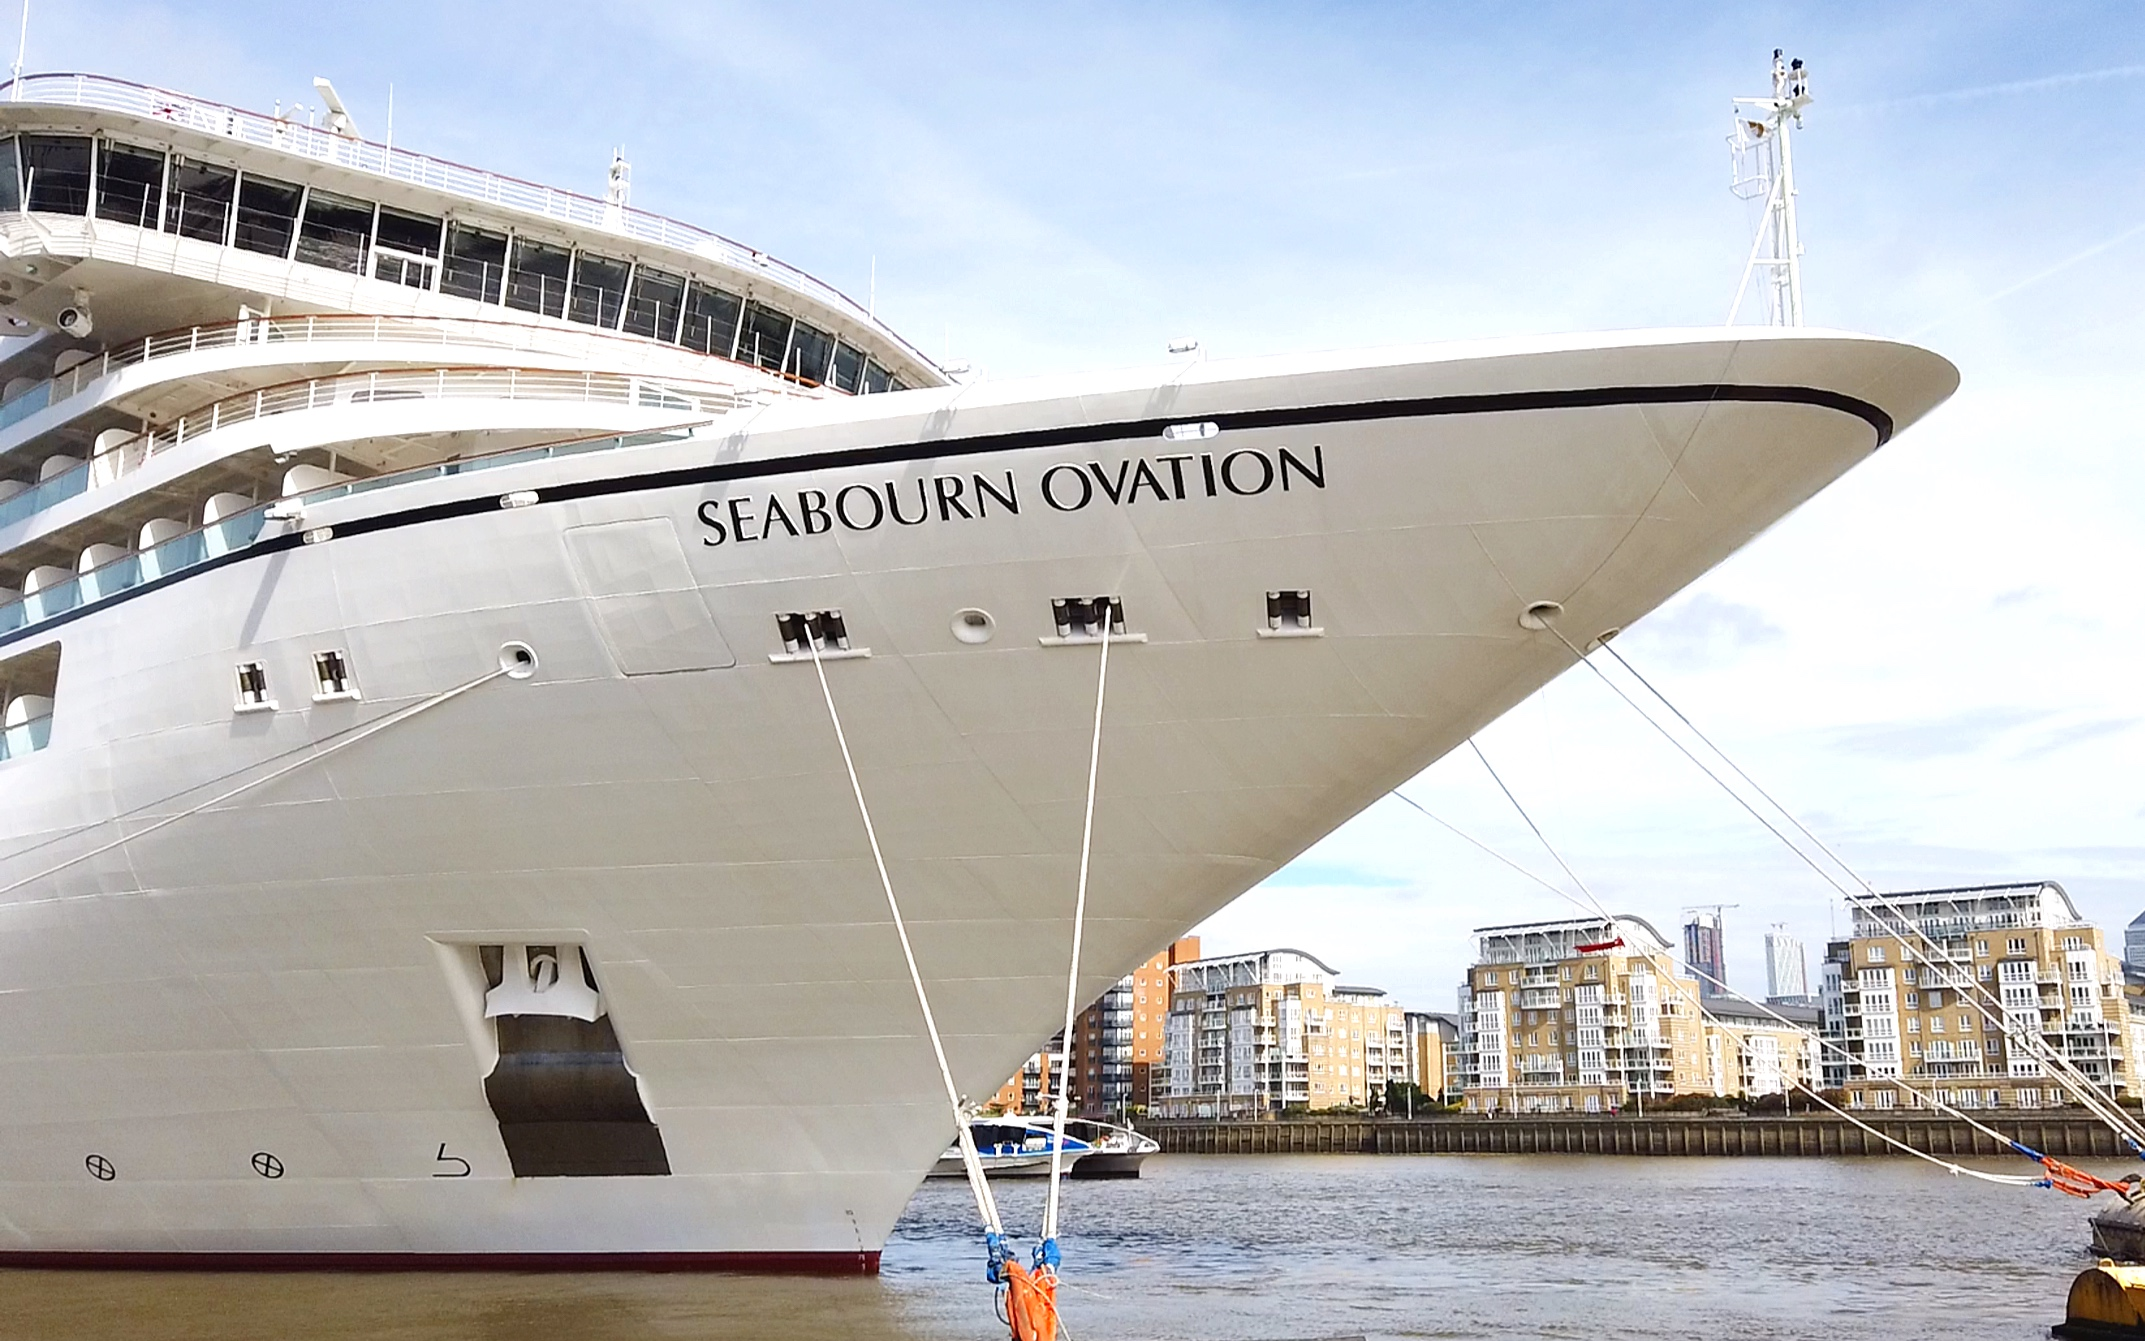 Our first sight of the Seabourn Ovation.